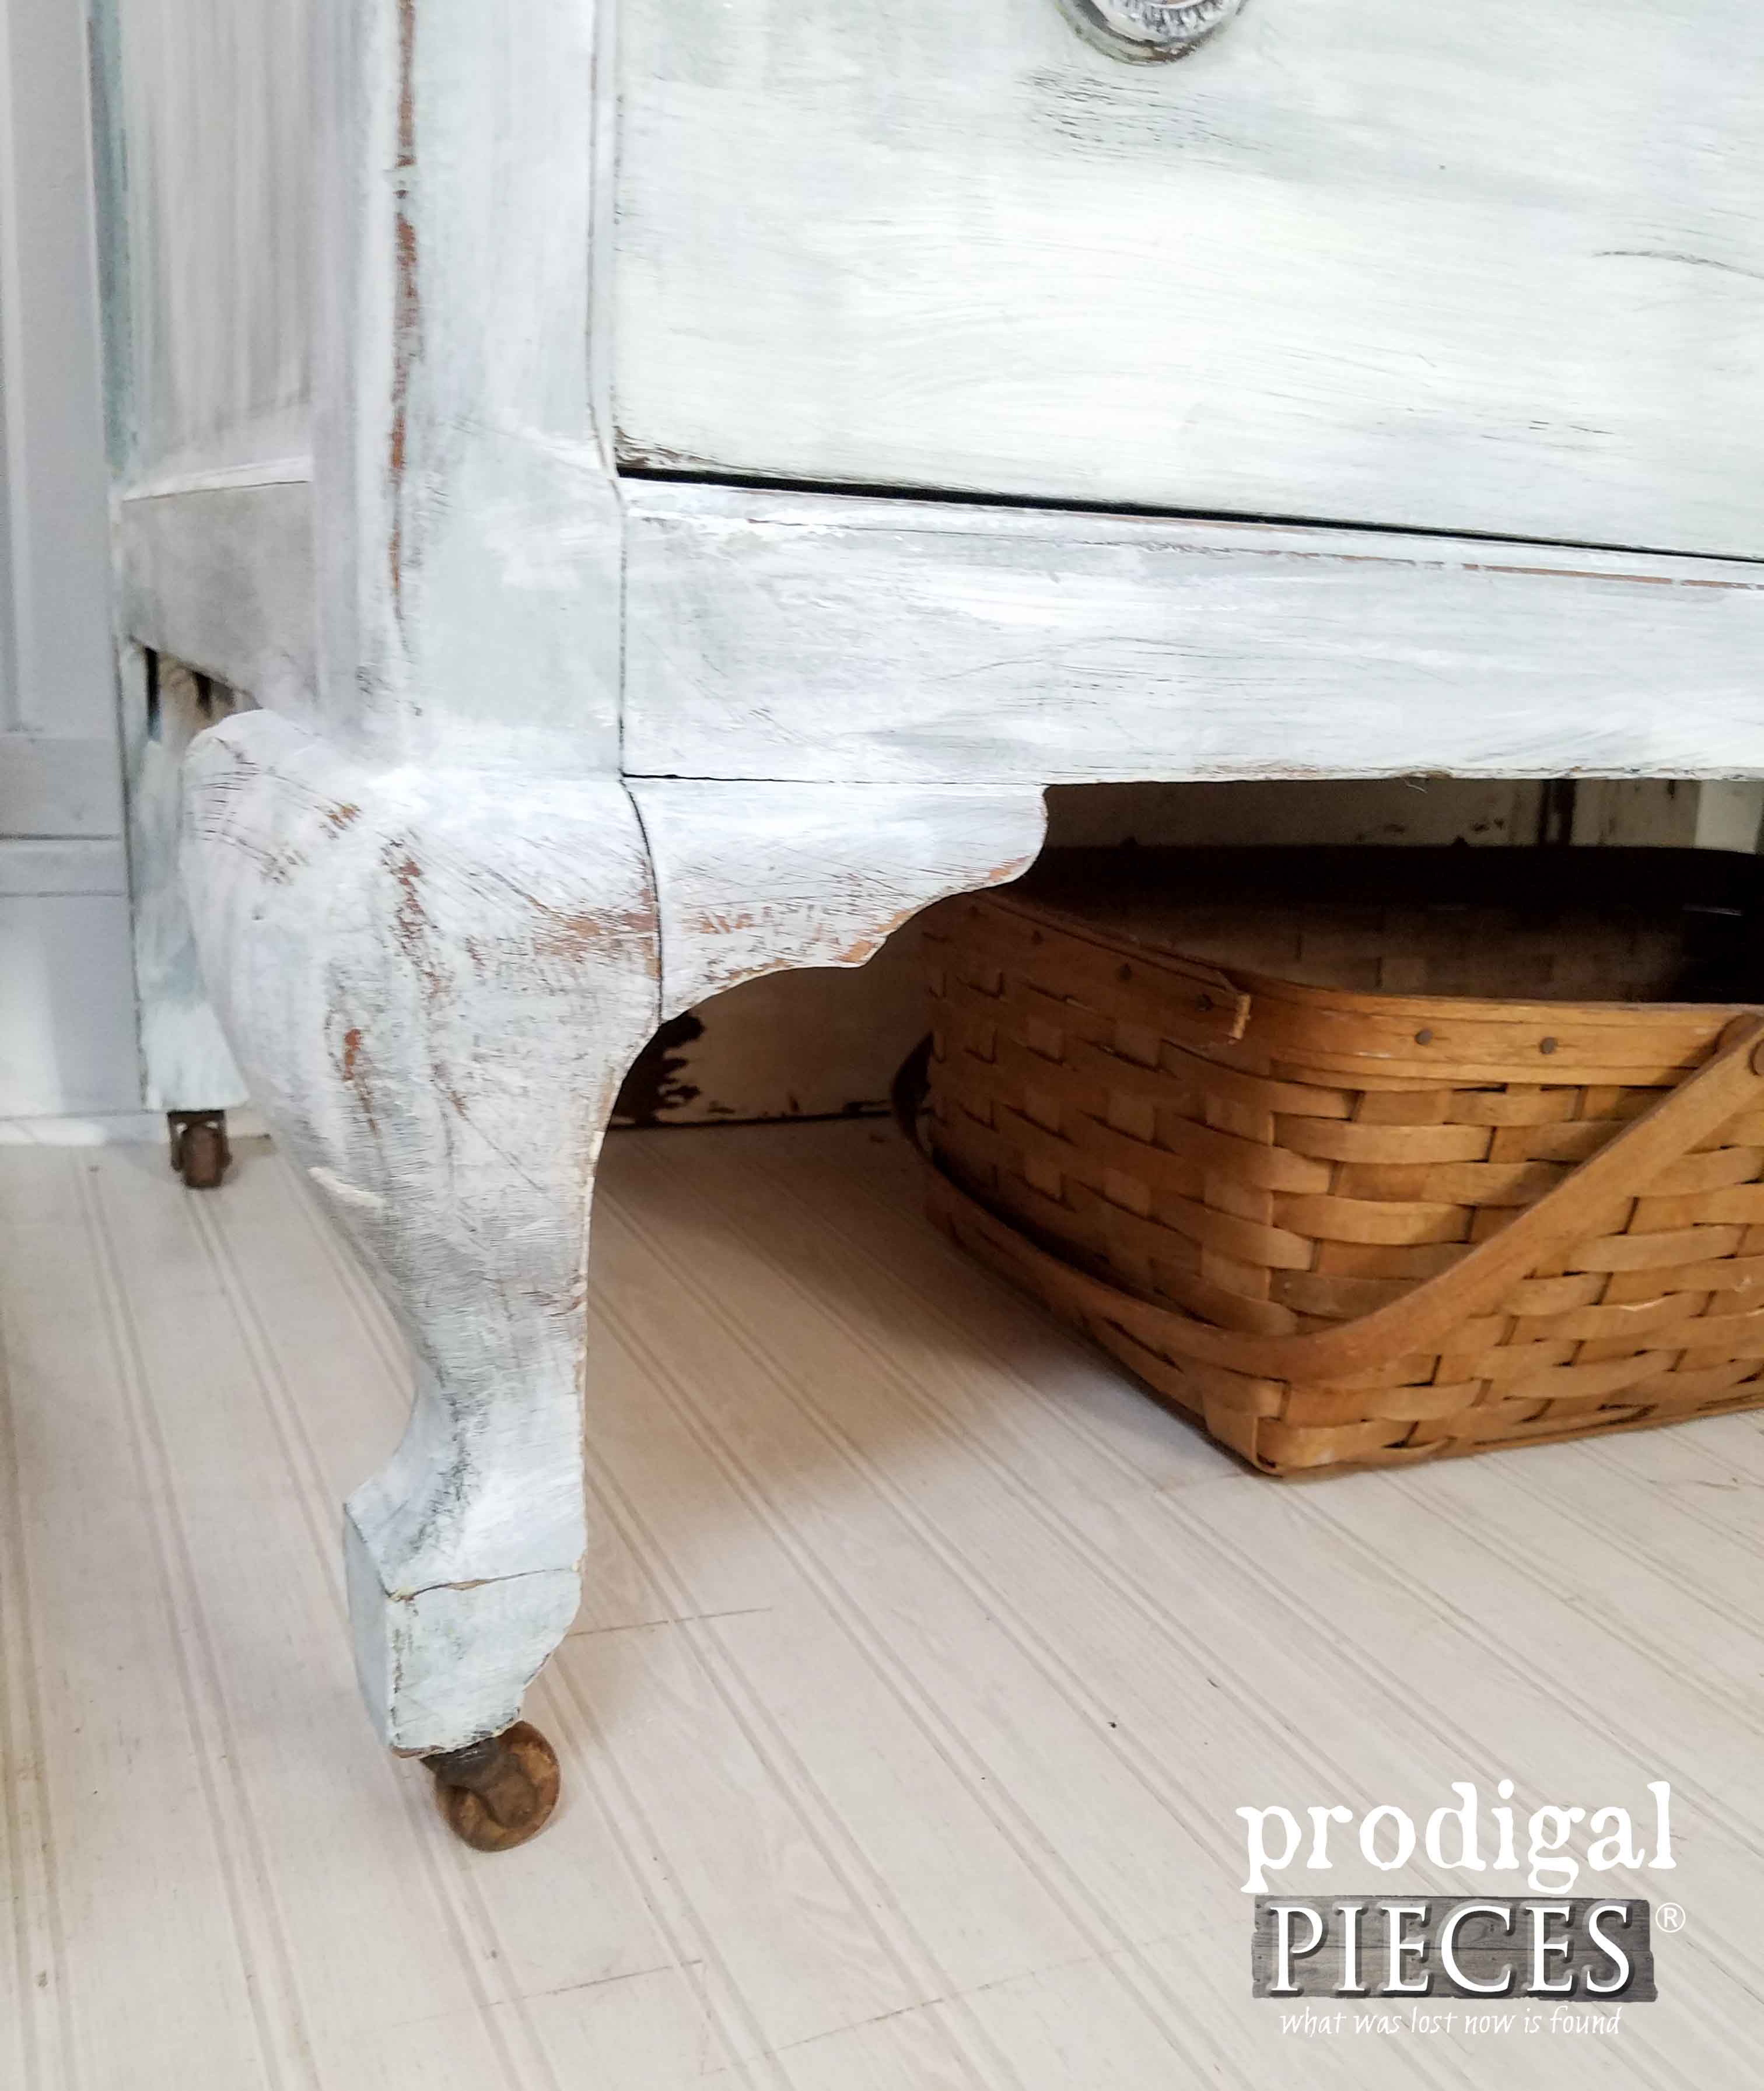 Queen Anne Leg on Farmhouse Chic Dresser by Prodigal Pieces | www.prodigalpieces.com